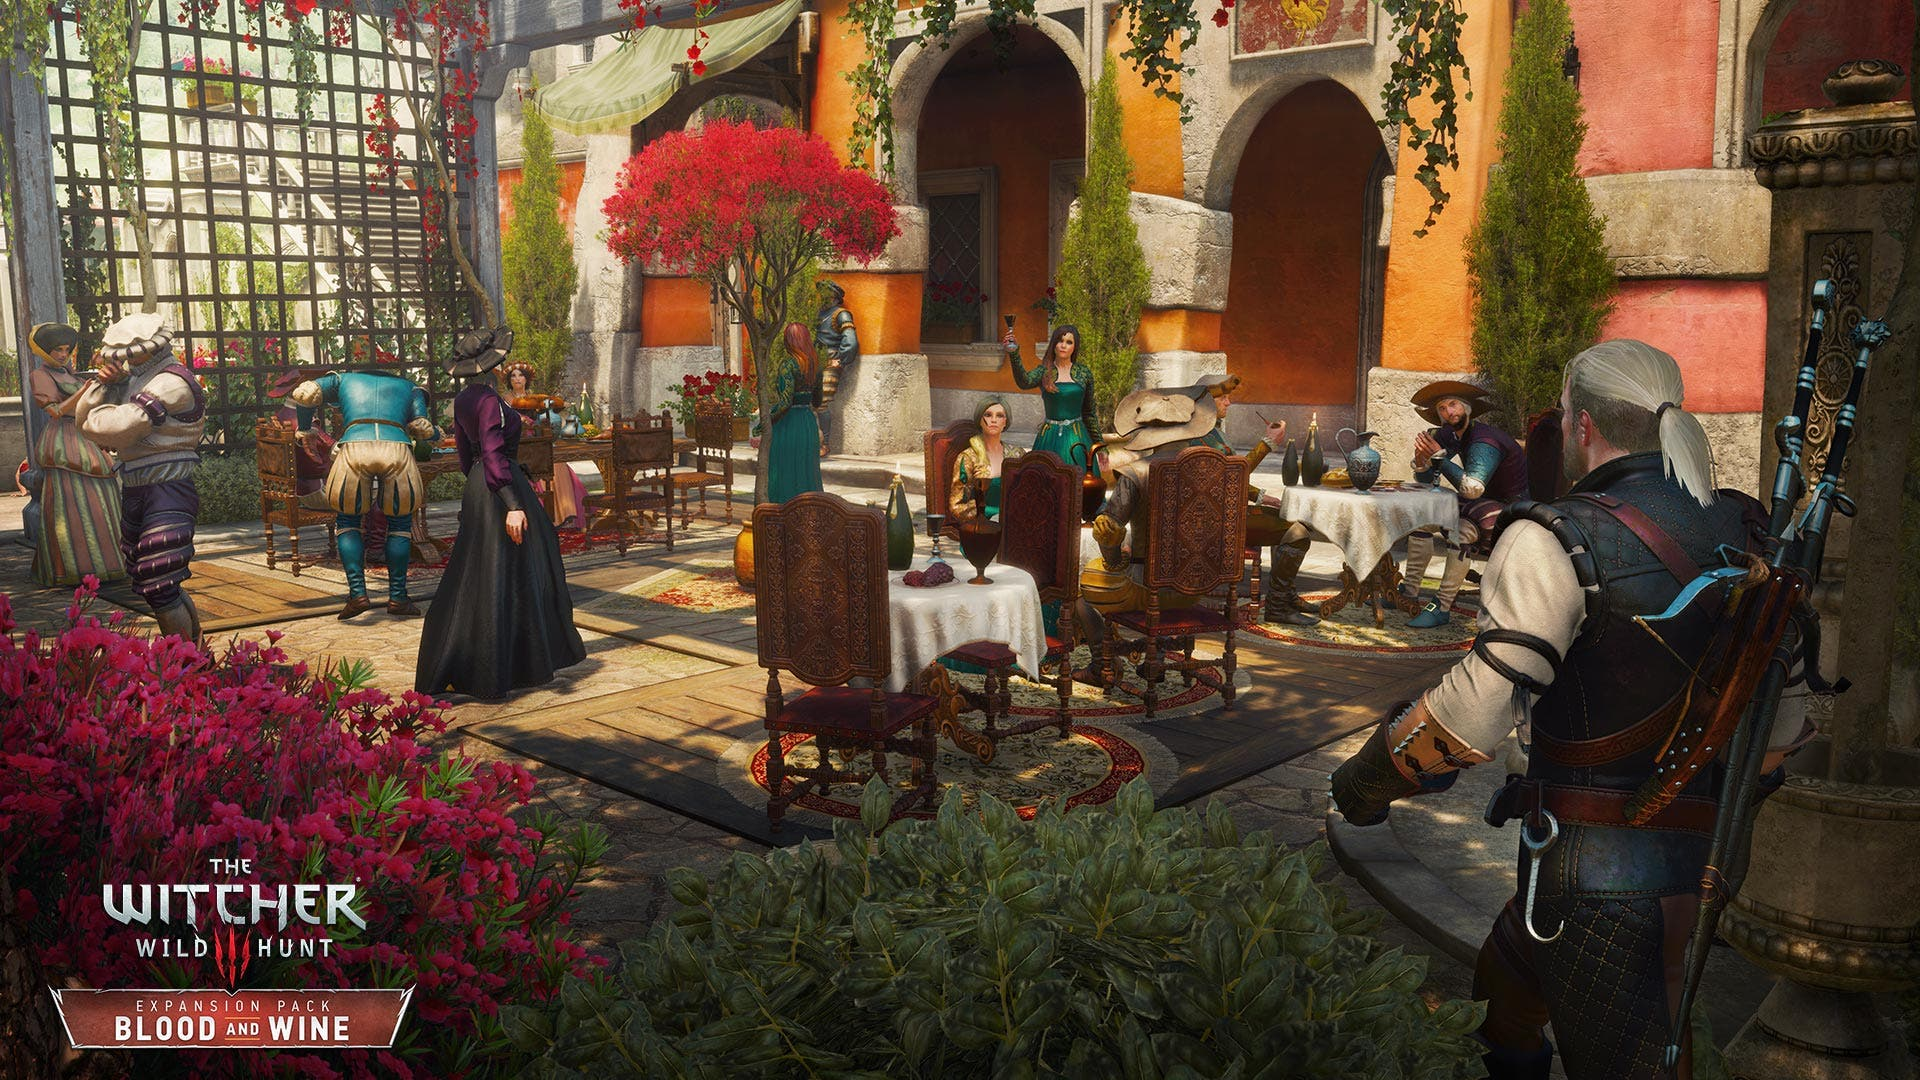 The_Witcher_3_Wild_Hunt_Blood_and_Wine_Grab_a_seat_and_have_a_glass_of_wine-copy